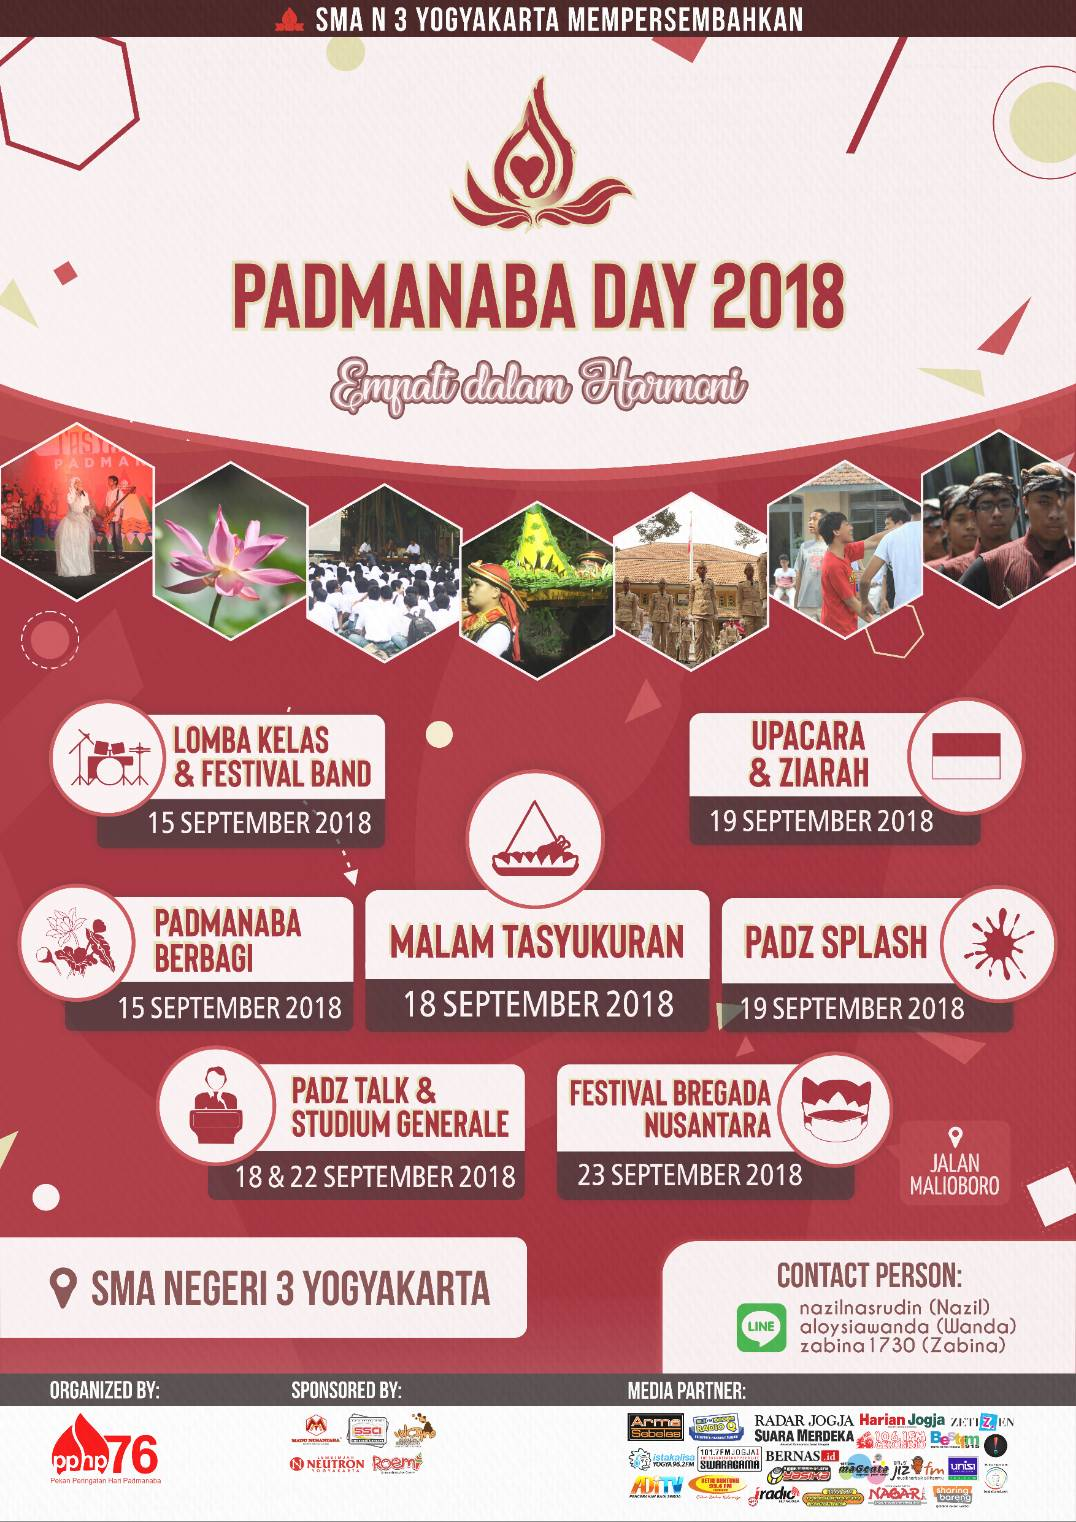 Permalink to PADMANABA DAY 2018